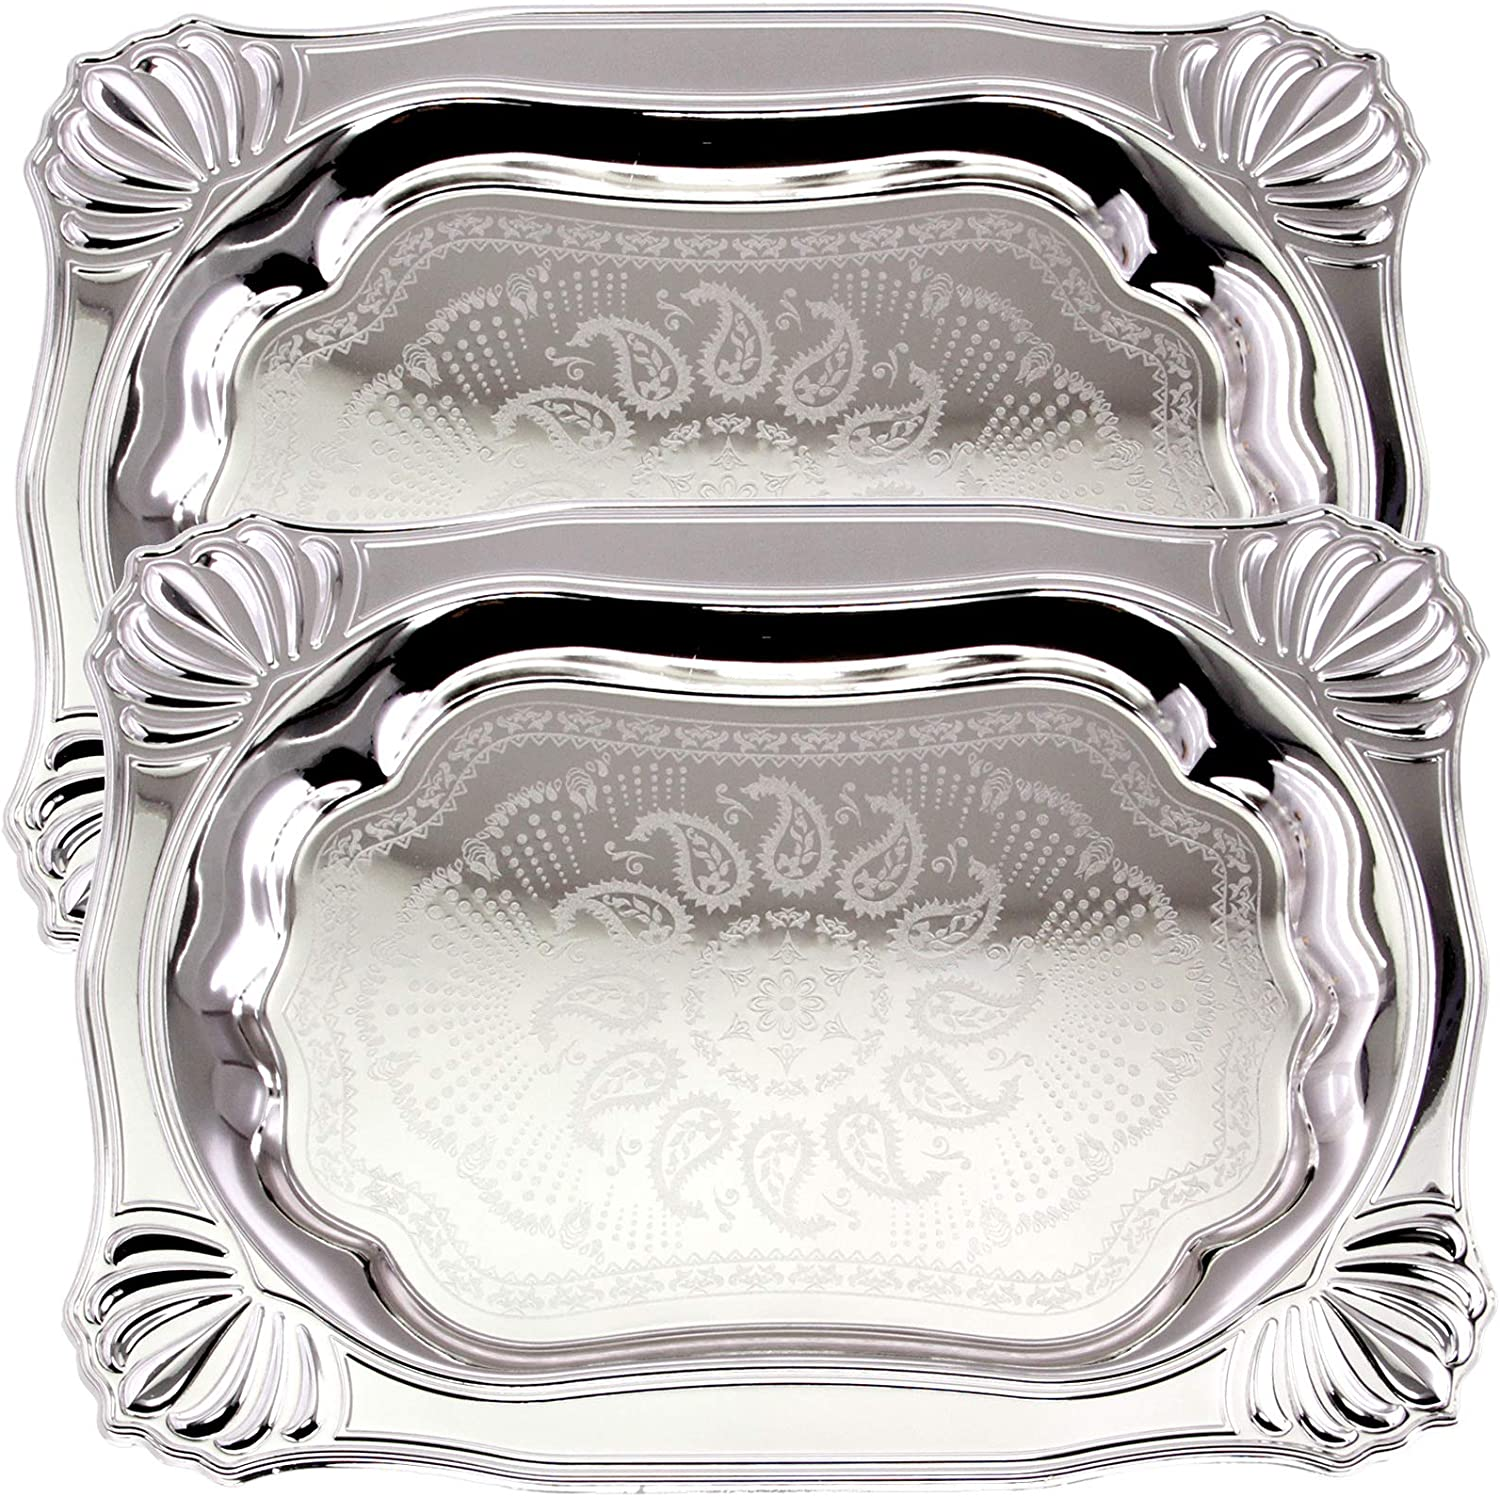 Maro Megastore (Pack of 2) 17.9 inch x 13.6 inch Oblong Chrome Plated Mirror Silver Serving Tray Stylish Design Floral Engraved Shell Edge Decorative Birthday Wedding Buffet Platter Plate TLA-271